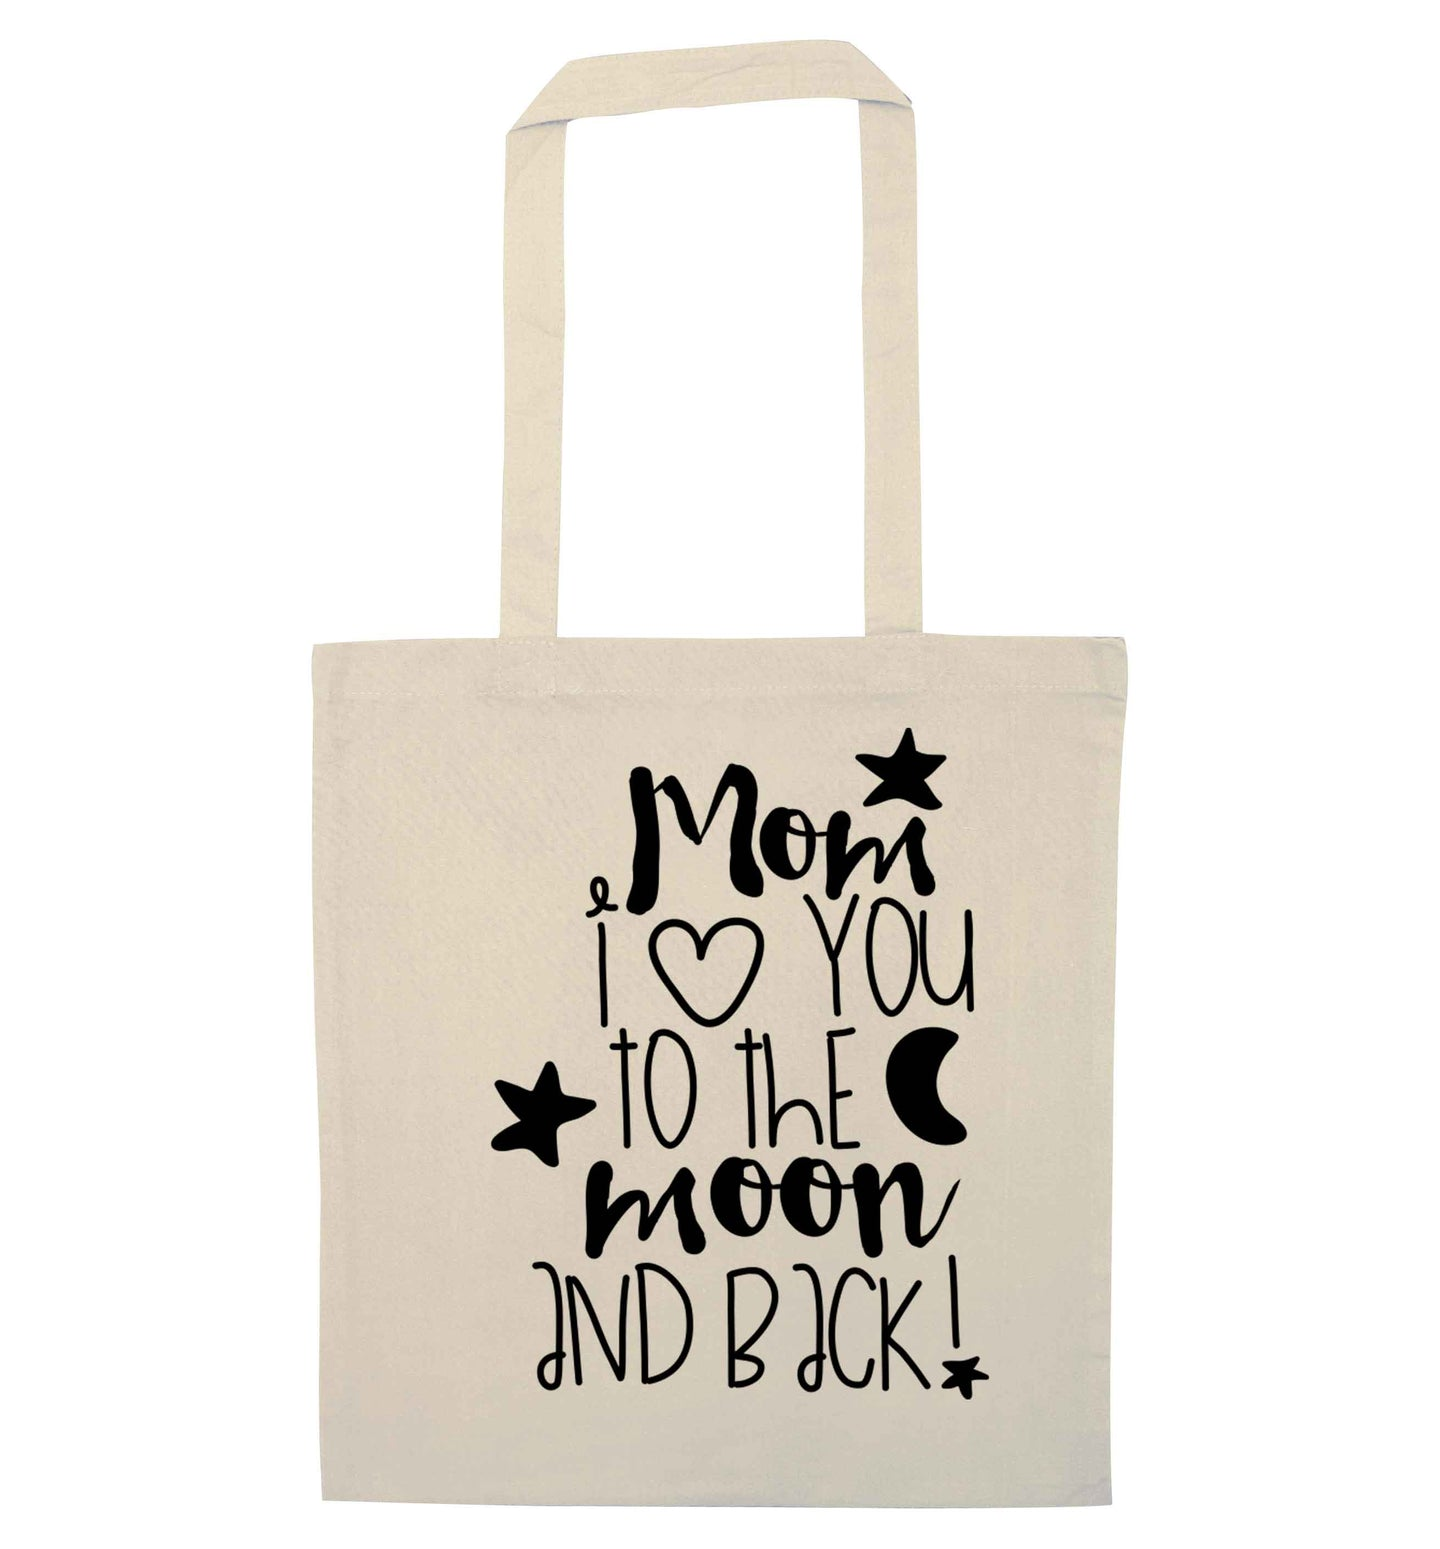 Mom I love you to the moon and back natural tote bag